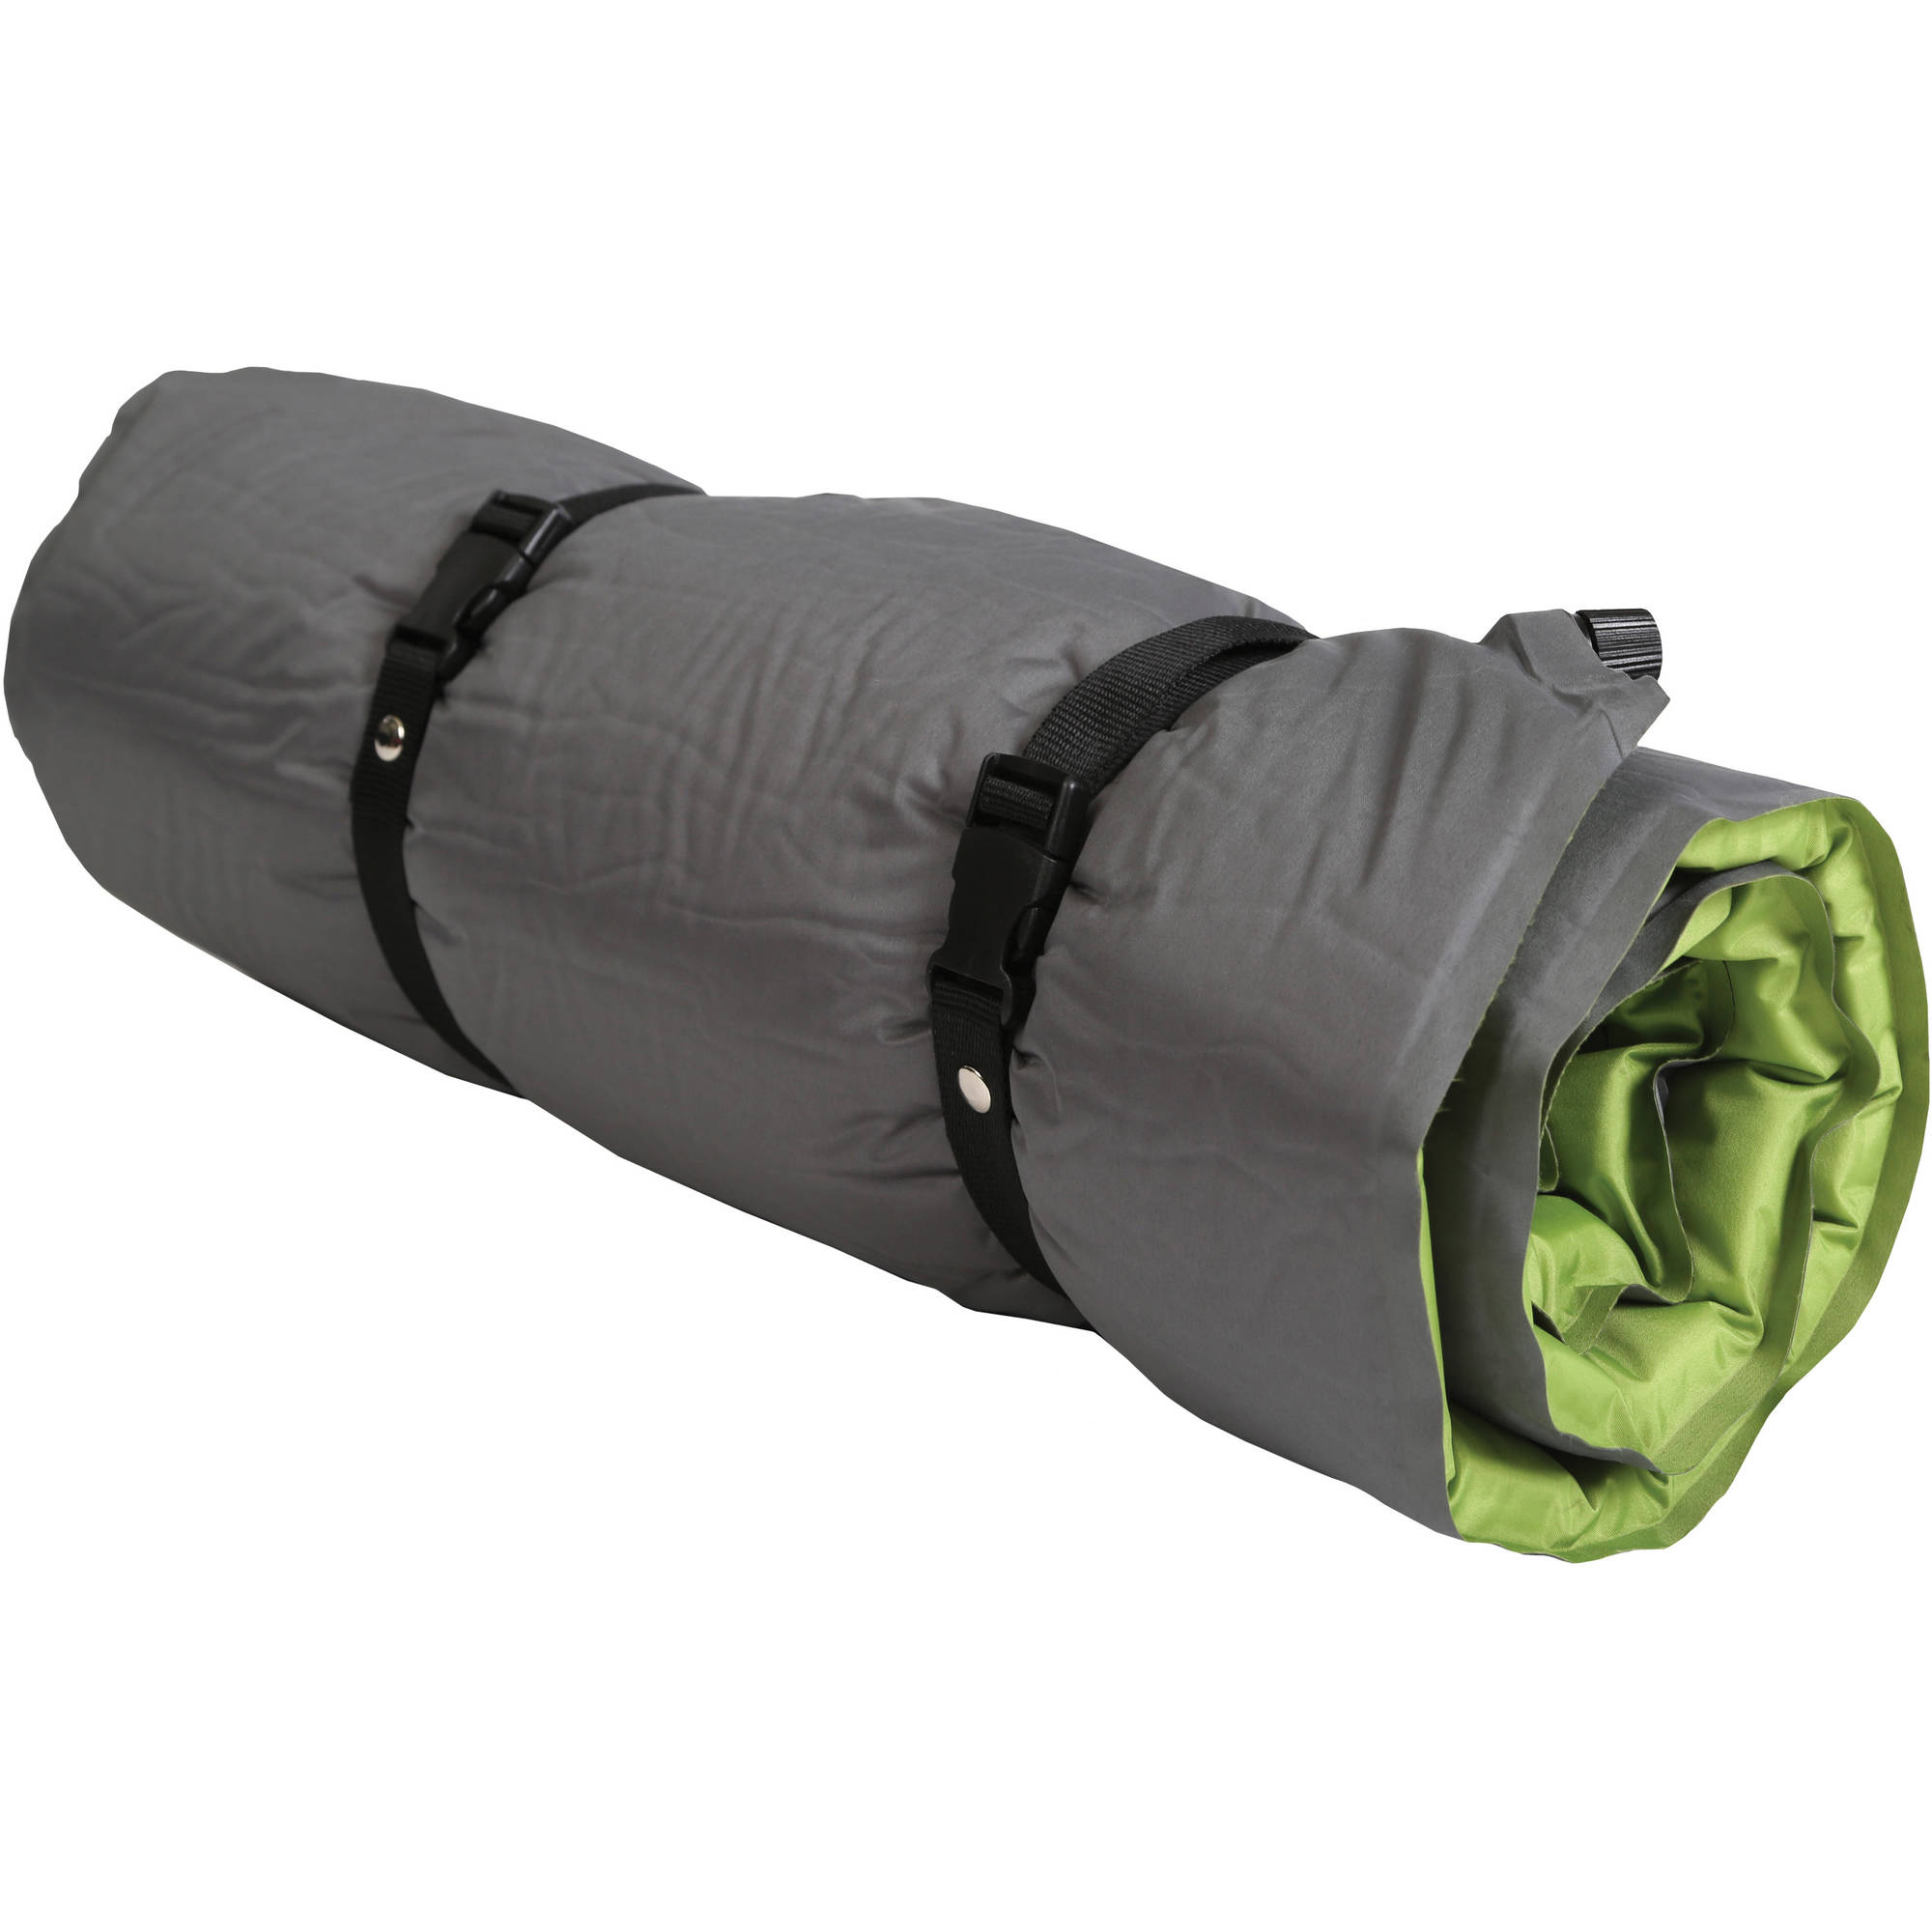 Stansport Self-Inflating Air Mat - 71inX25inX2in